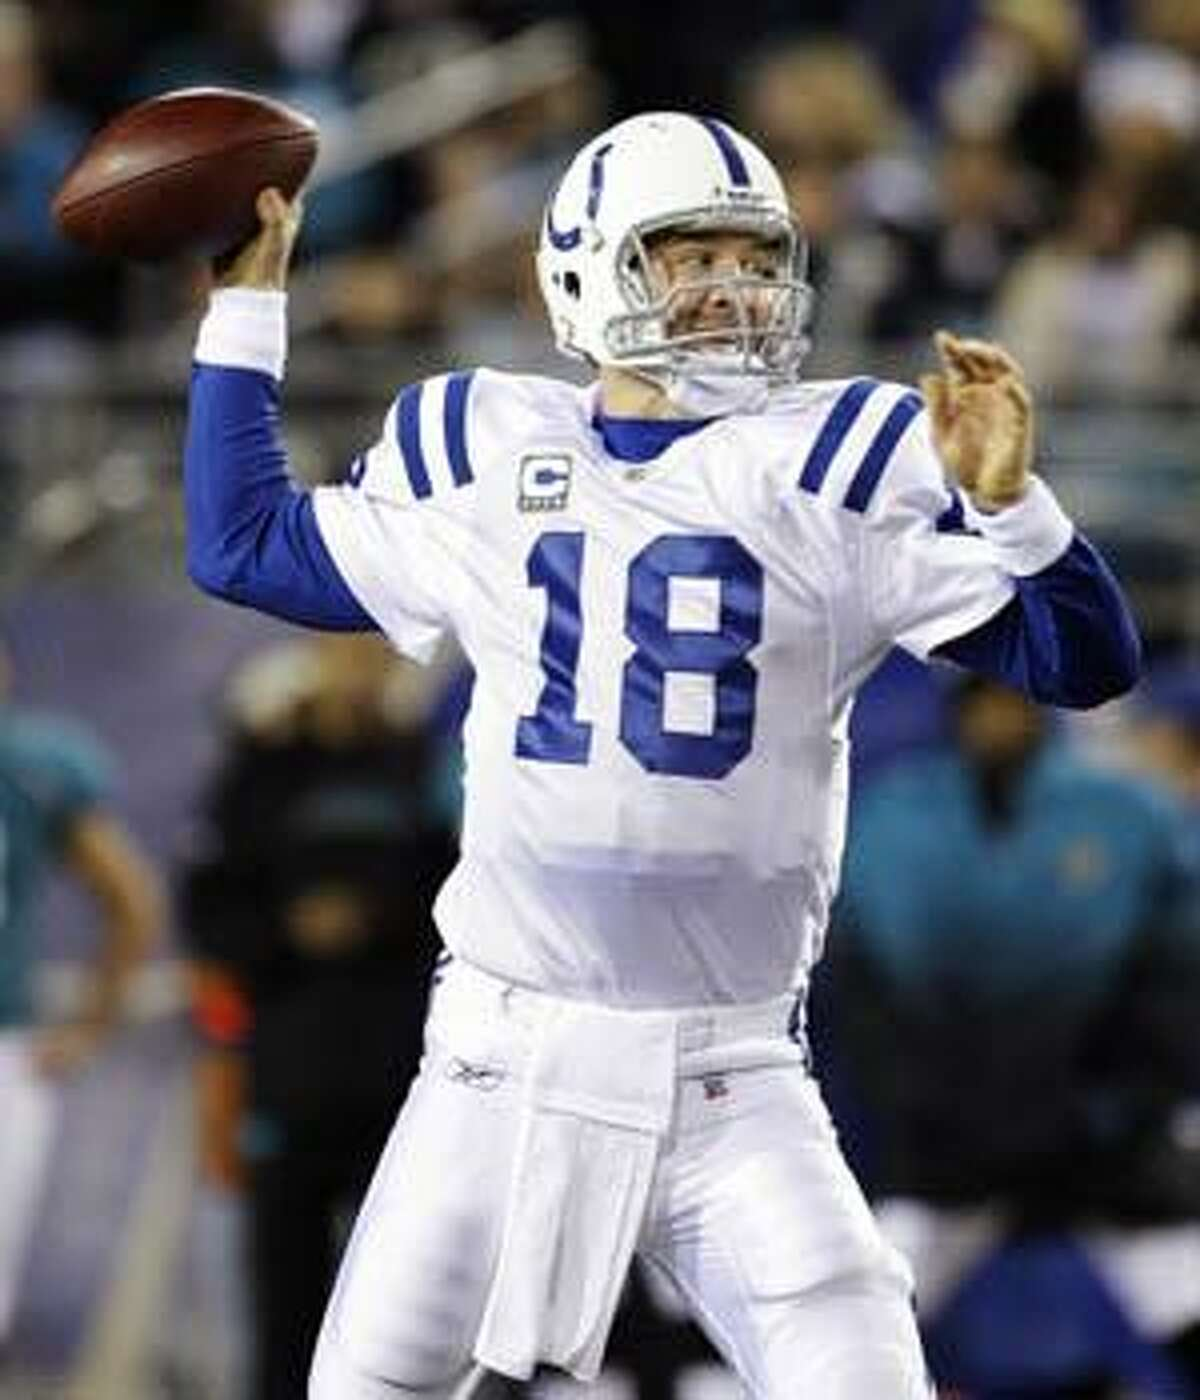 AP Indianapolis Colts quarterback Peyton Manning (18) throws a pass against the Jacksonville Jaguars during a game Thursday in Jacksonville, Fla. The Colts won 35-31 to remain unbeaten.